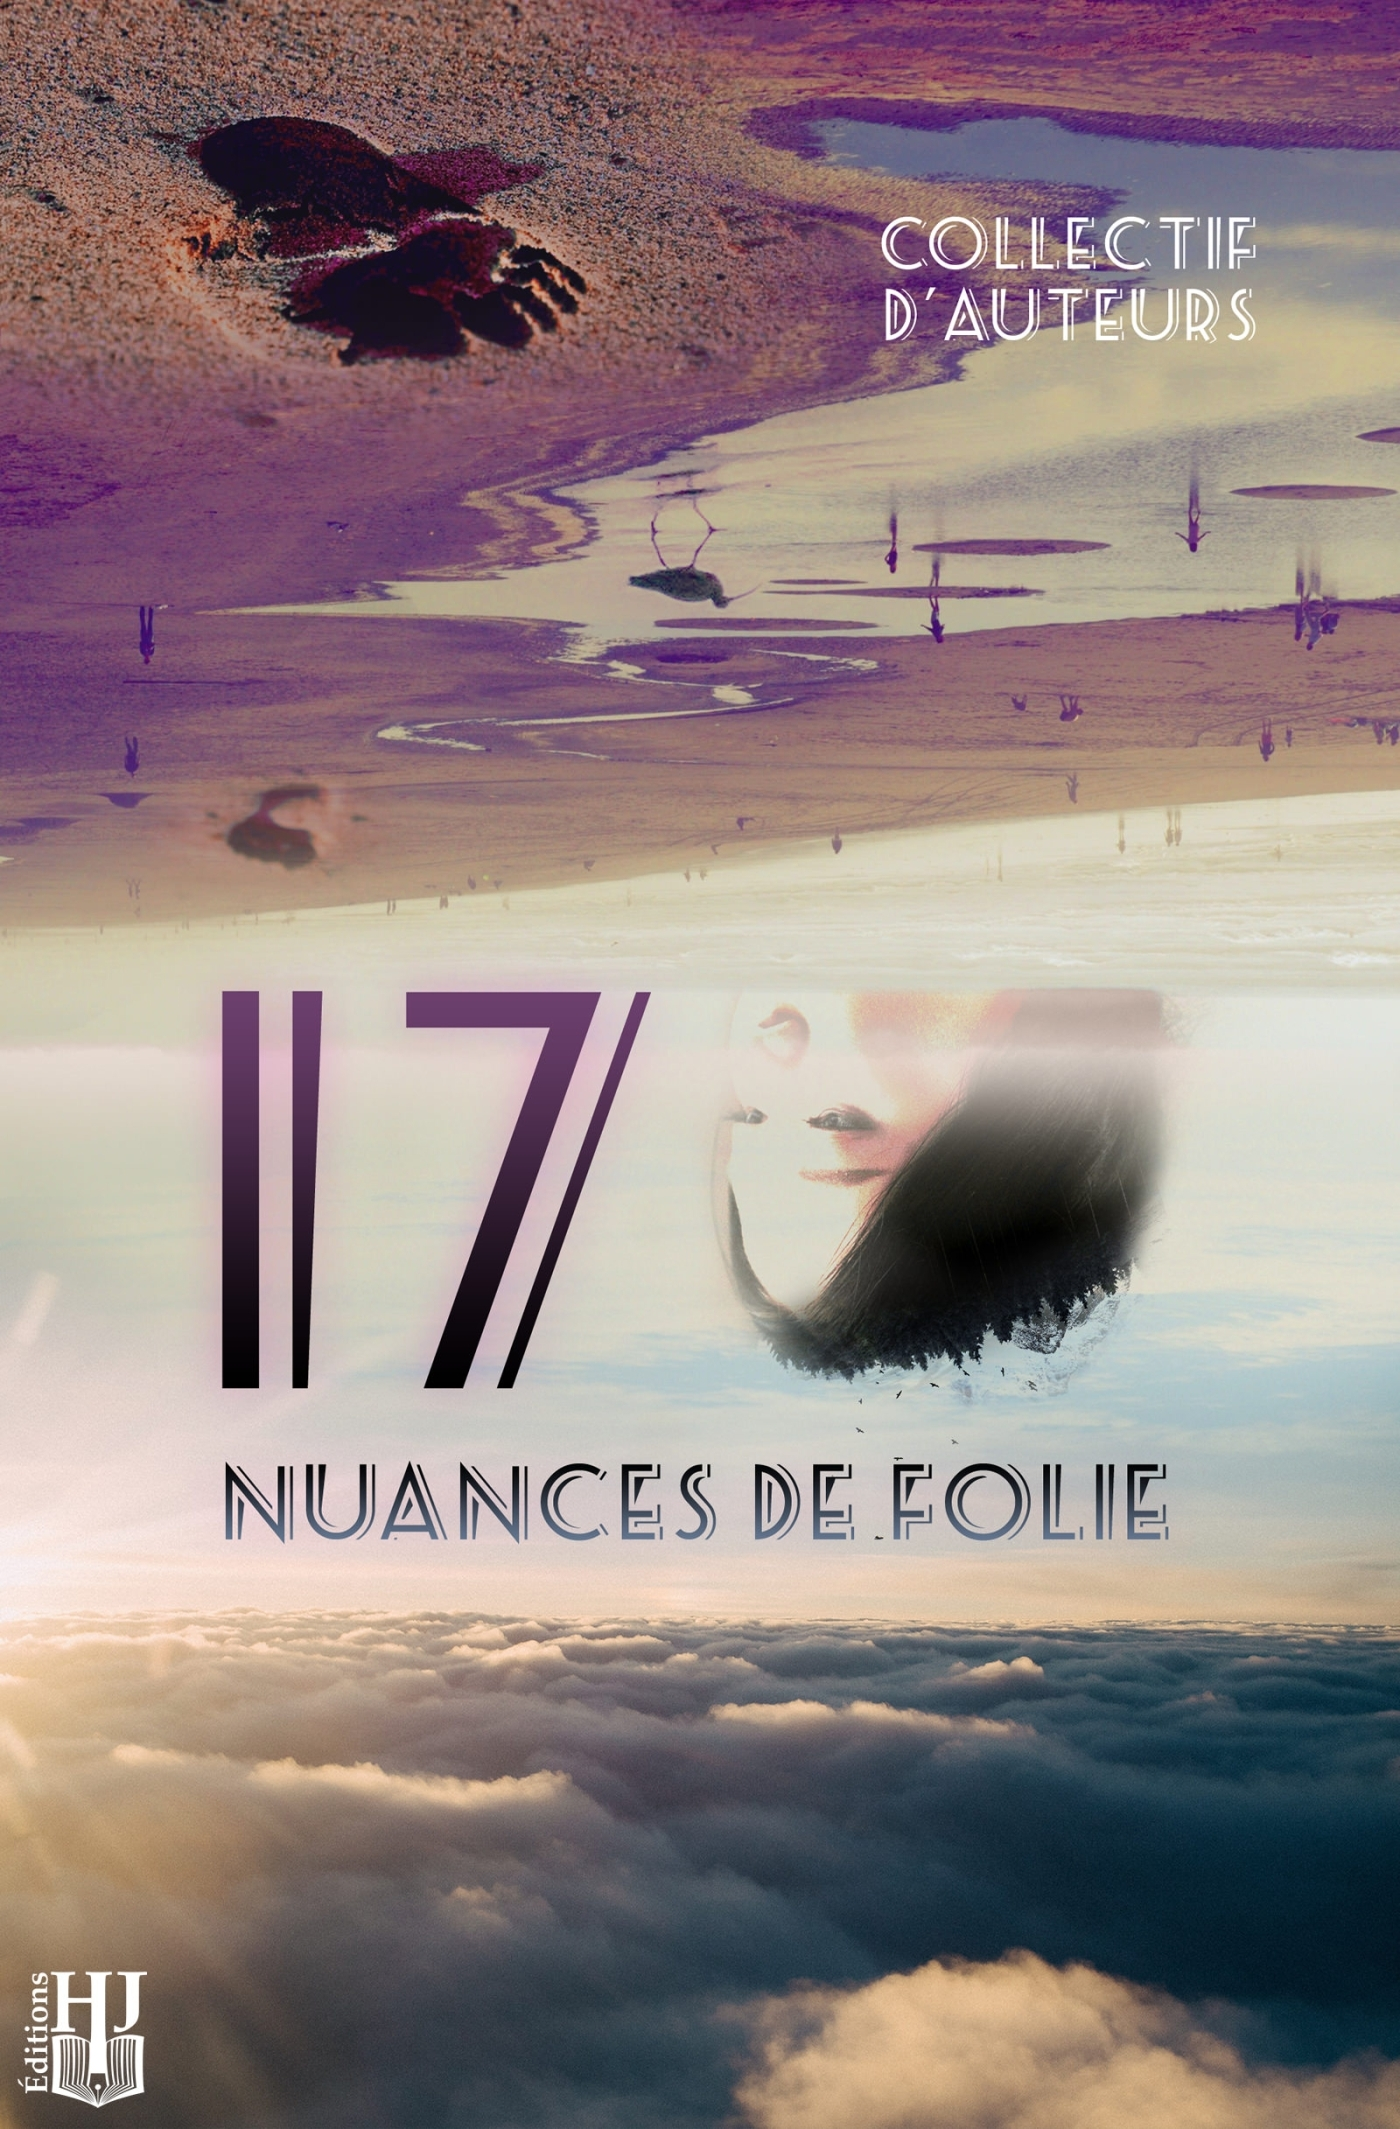 17 NUANCES DE FOLIE